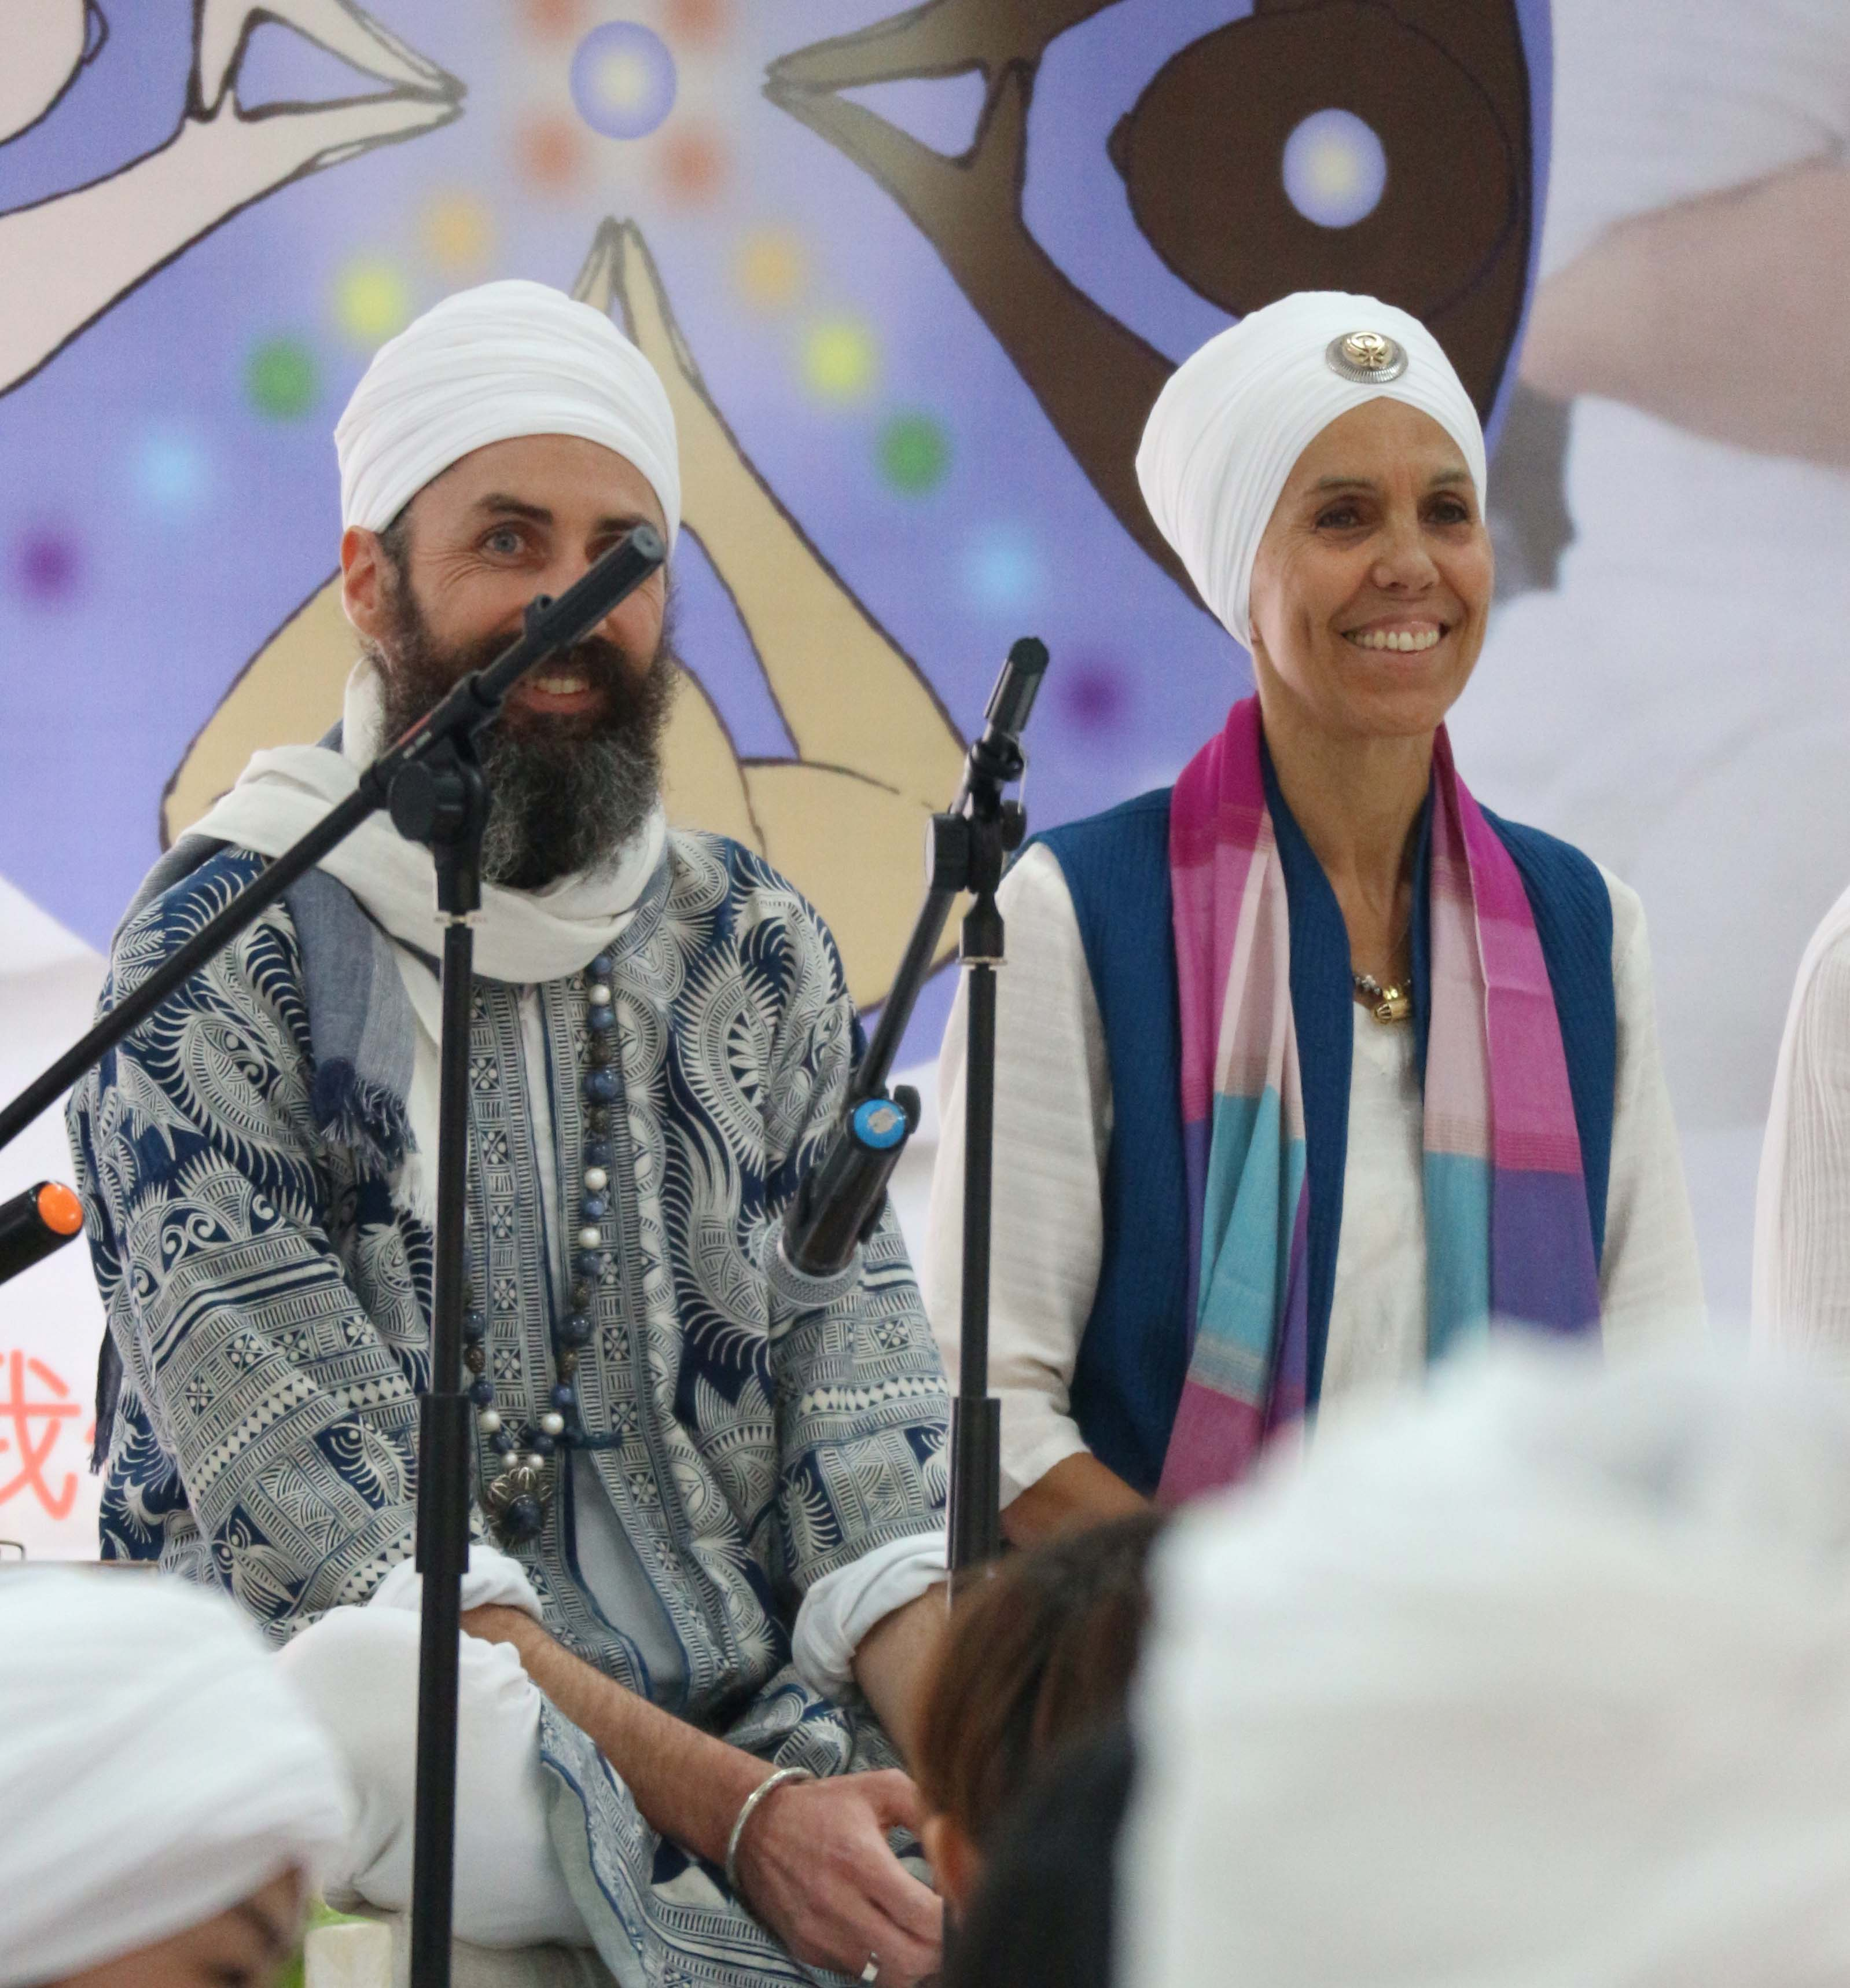 Ajai Alai Awakening - Kundalini Yoga - Austria - China - Sat Sarbat and Satmukh